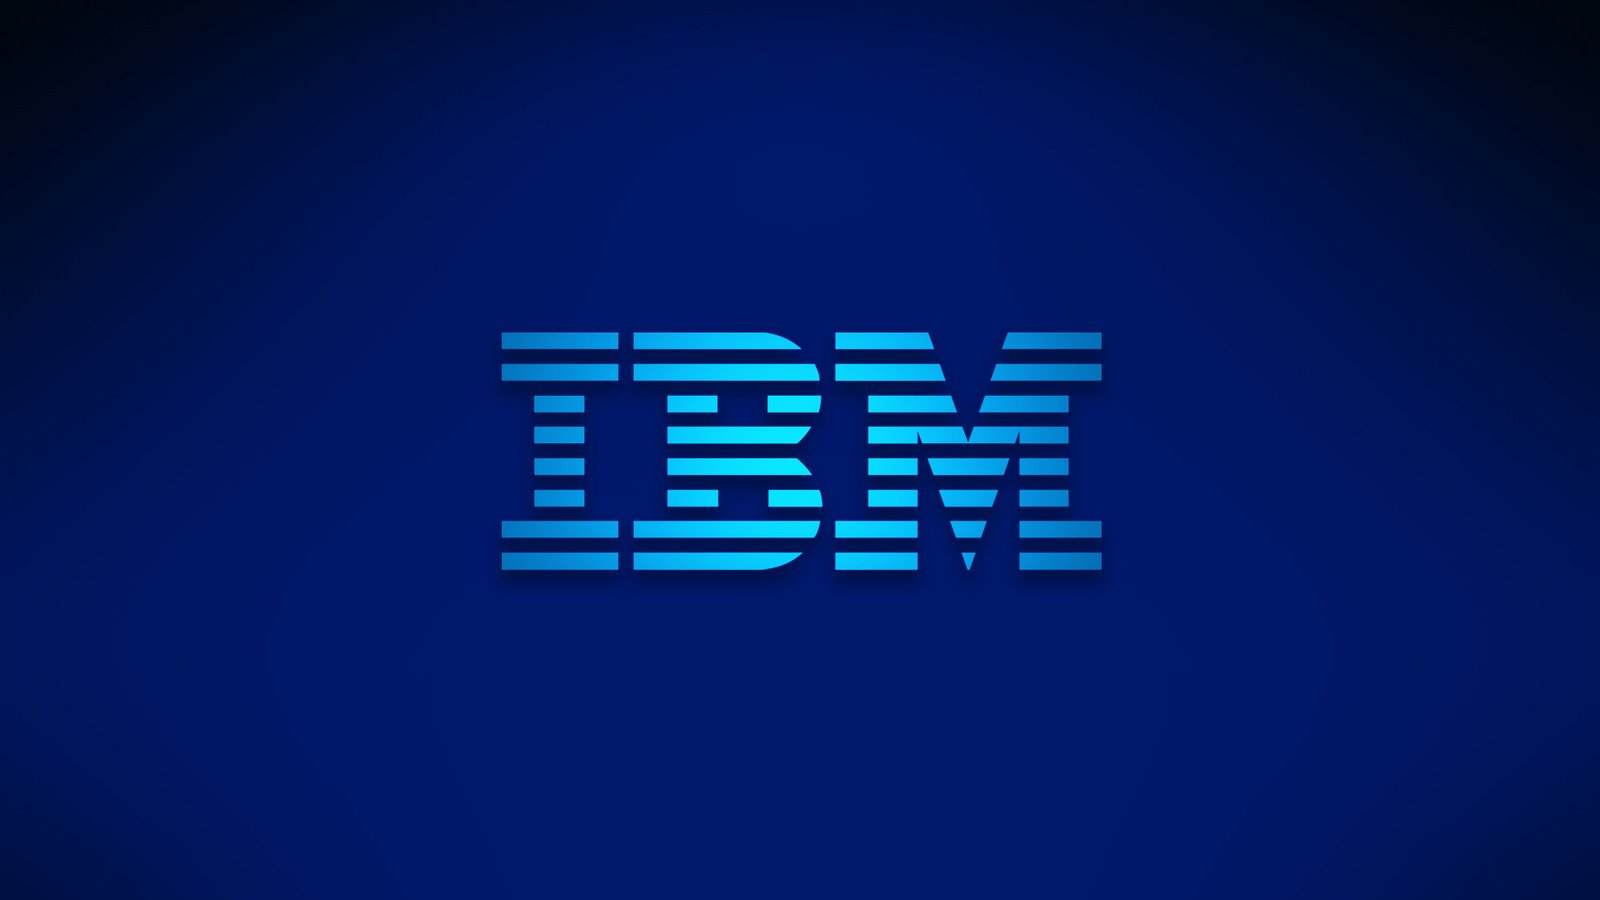 IBM Wallpaper 014